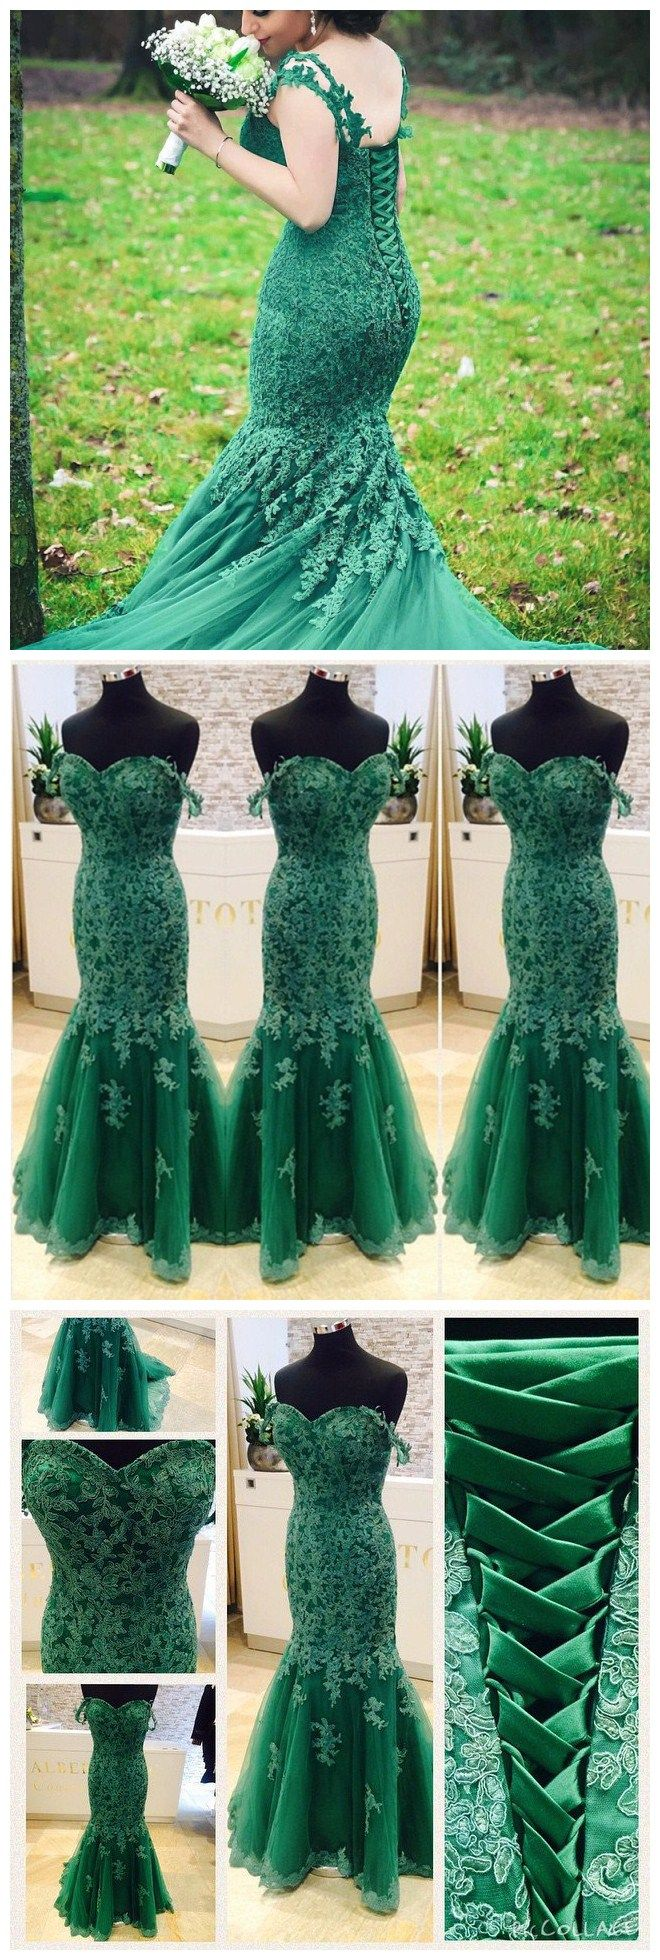 Mermaid lace prom dress,green color!